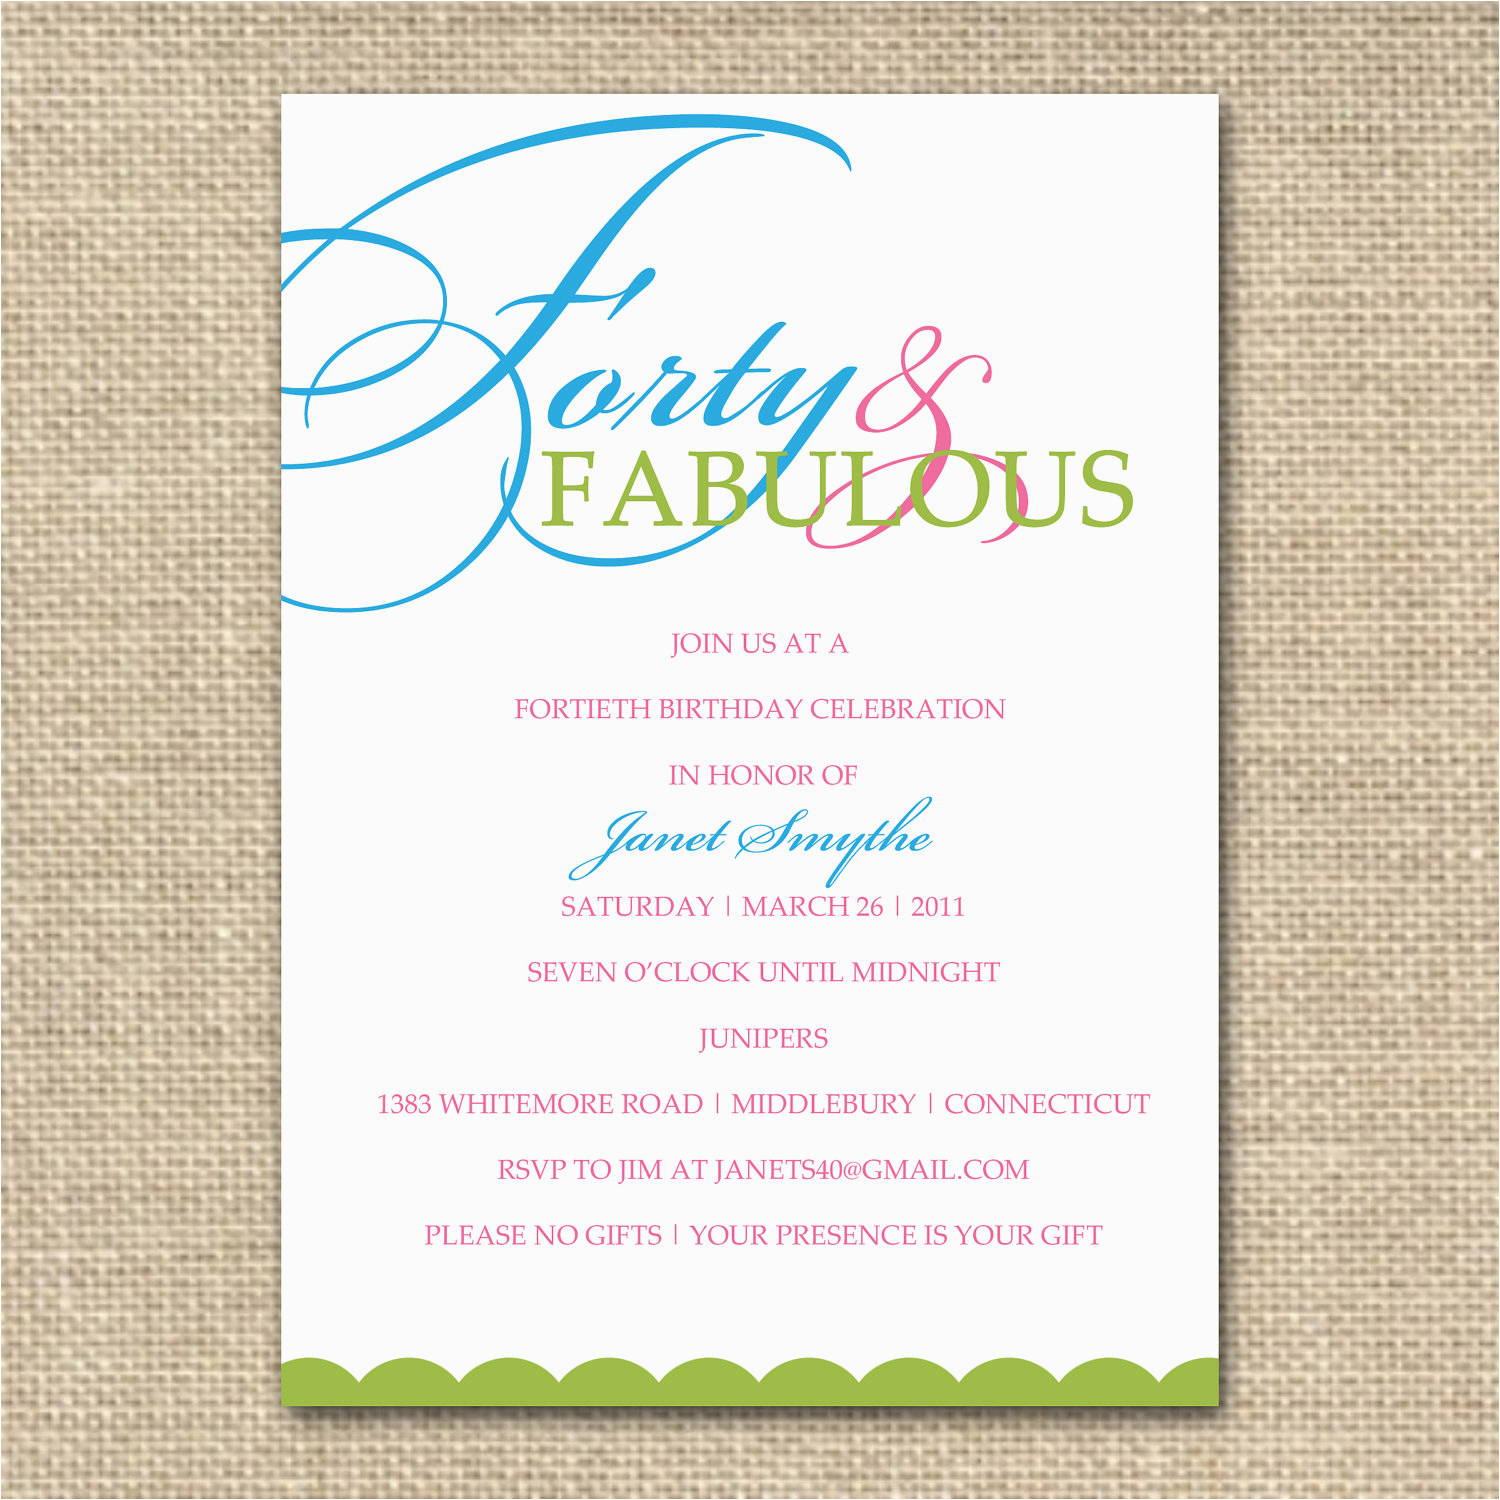 40th Birthday Invitation Wording Samples 10 Invite Decision Free